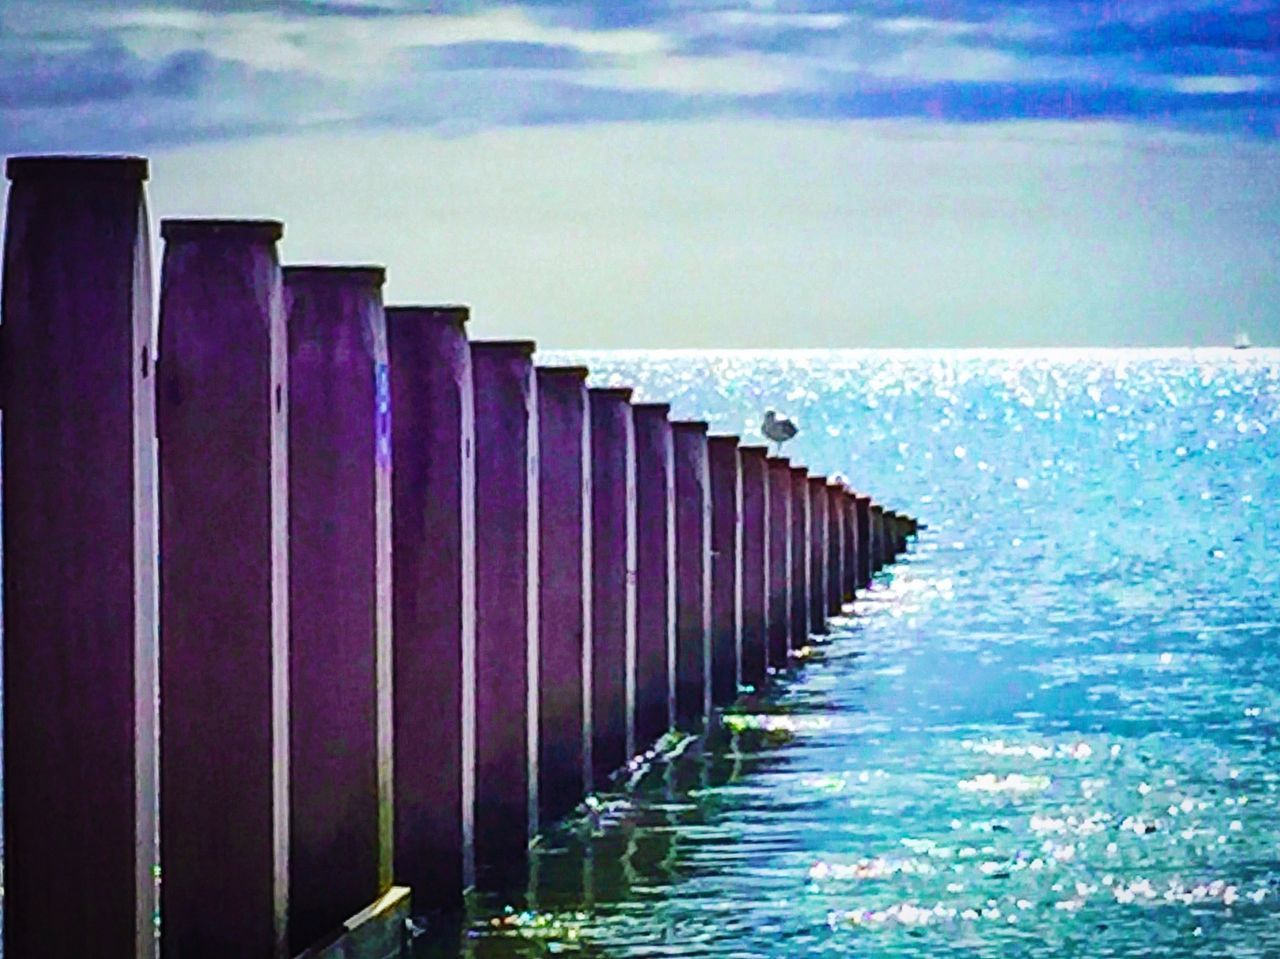 Groynes reaching out into the sea at Dawlish Warren beach in Devon. Beach Sea Groyne Groynes Groin Seaside Coast Sea Defence Coastal Defences Coastline Sea Sky Tranquility Tranquil Peaceful Holiday Seascape Dawlish Warren Devon